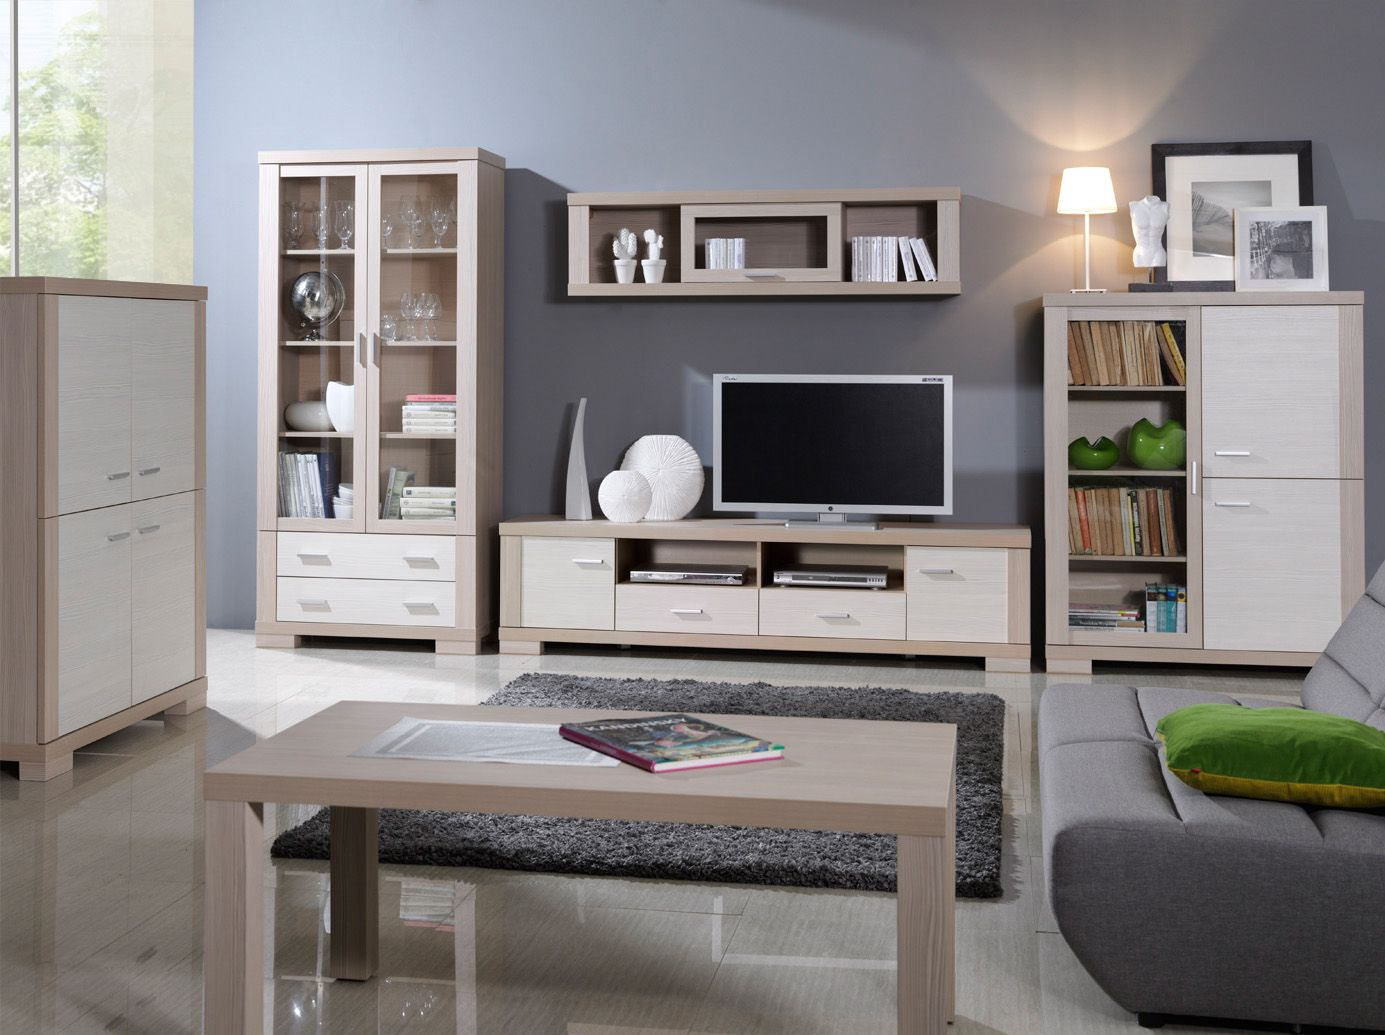 classique meuble tv meuble tv bois meuble tv en bois. Black Bedroom Furniture Sets. Home Design Ideas